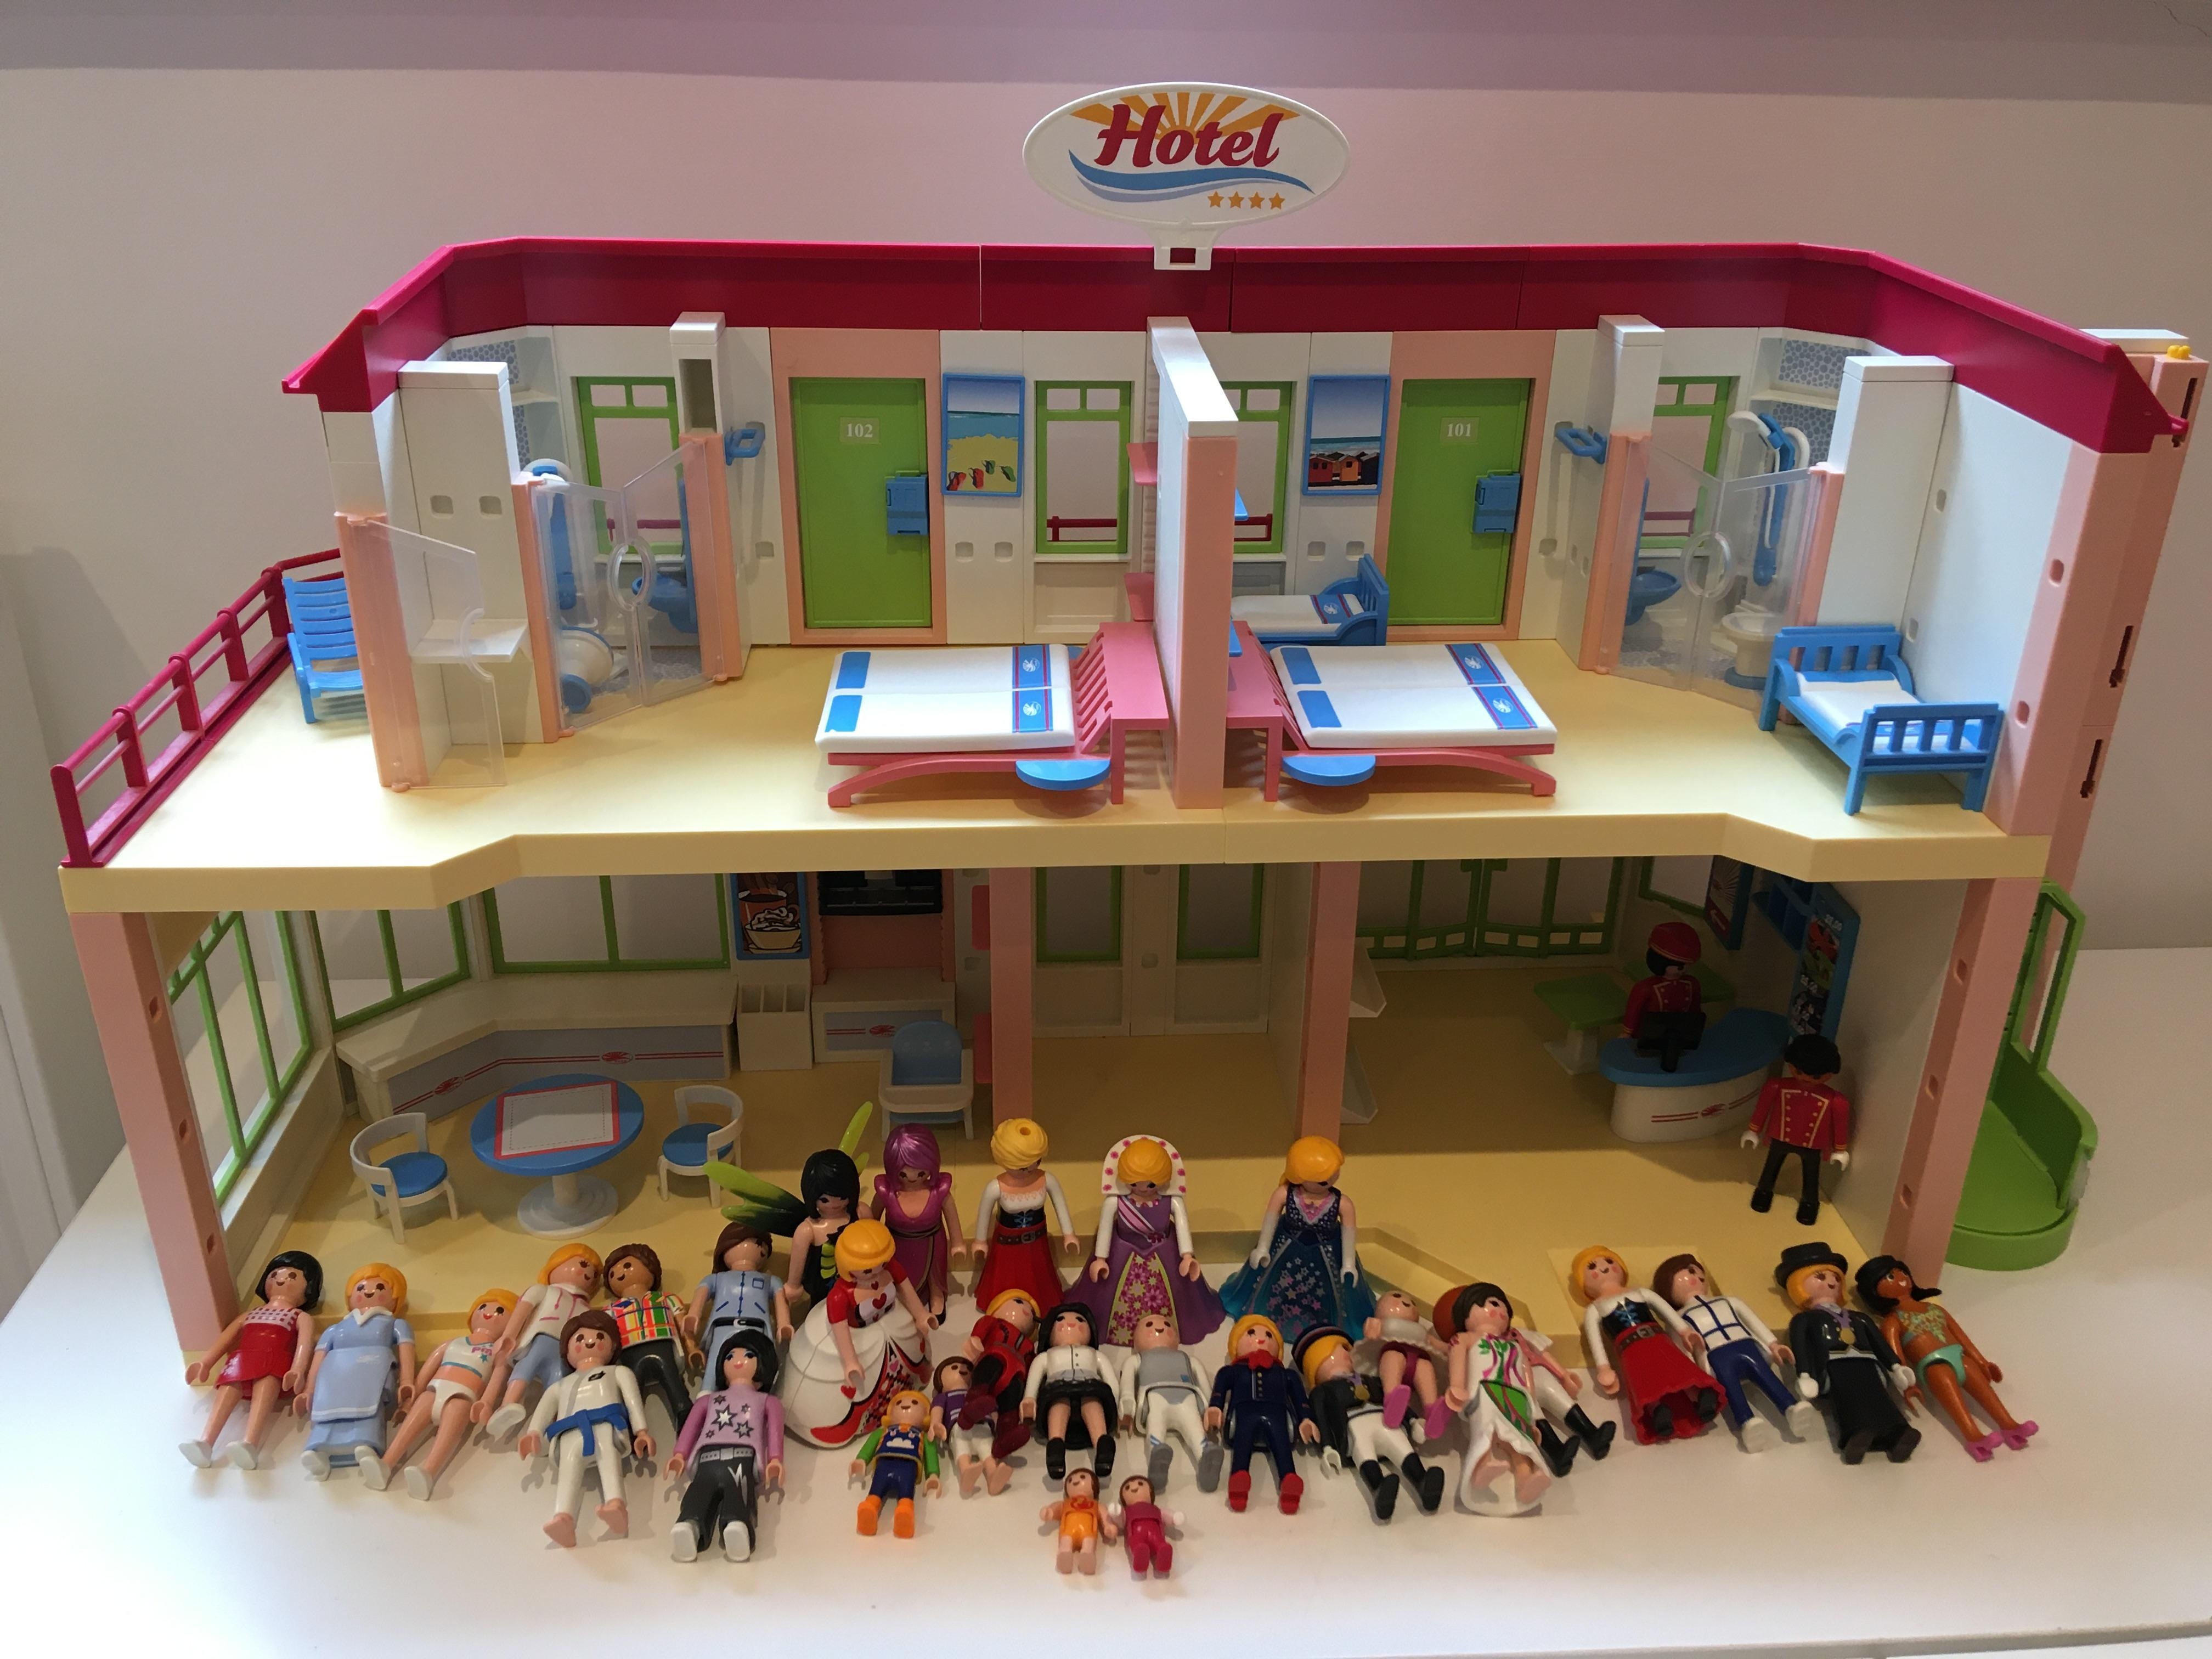 Playmobil Hotel with 32 figures and furniture